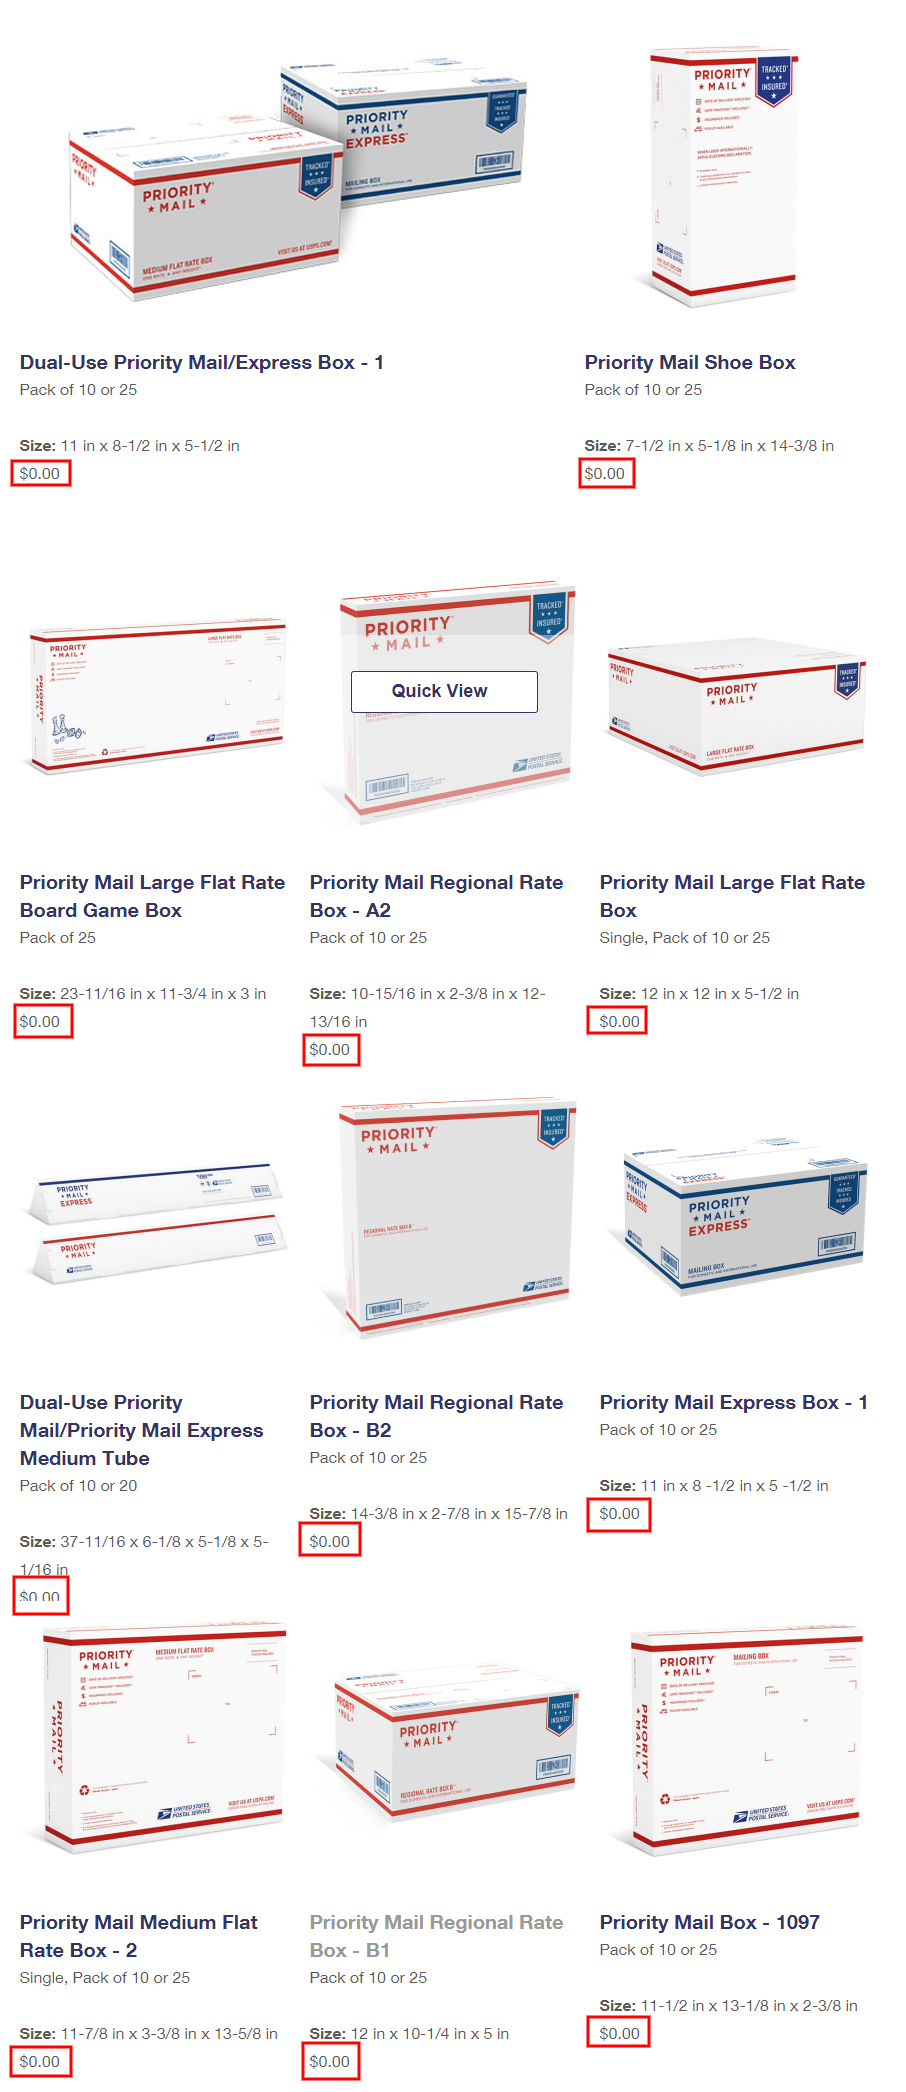 Usps Flat Rate Box Shipping Sizes And Price Breakdown How To Enable Flat Rate Boxes On Woocommerce Elextensions